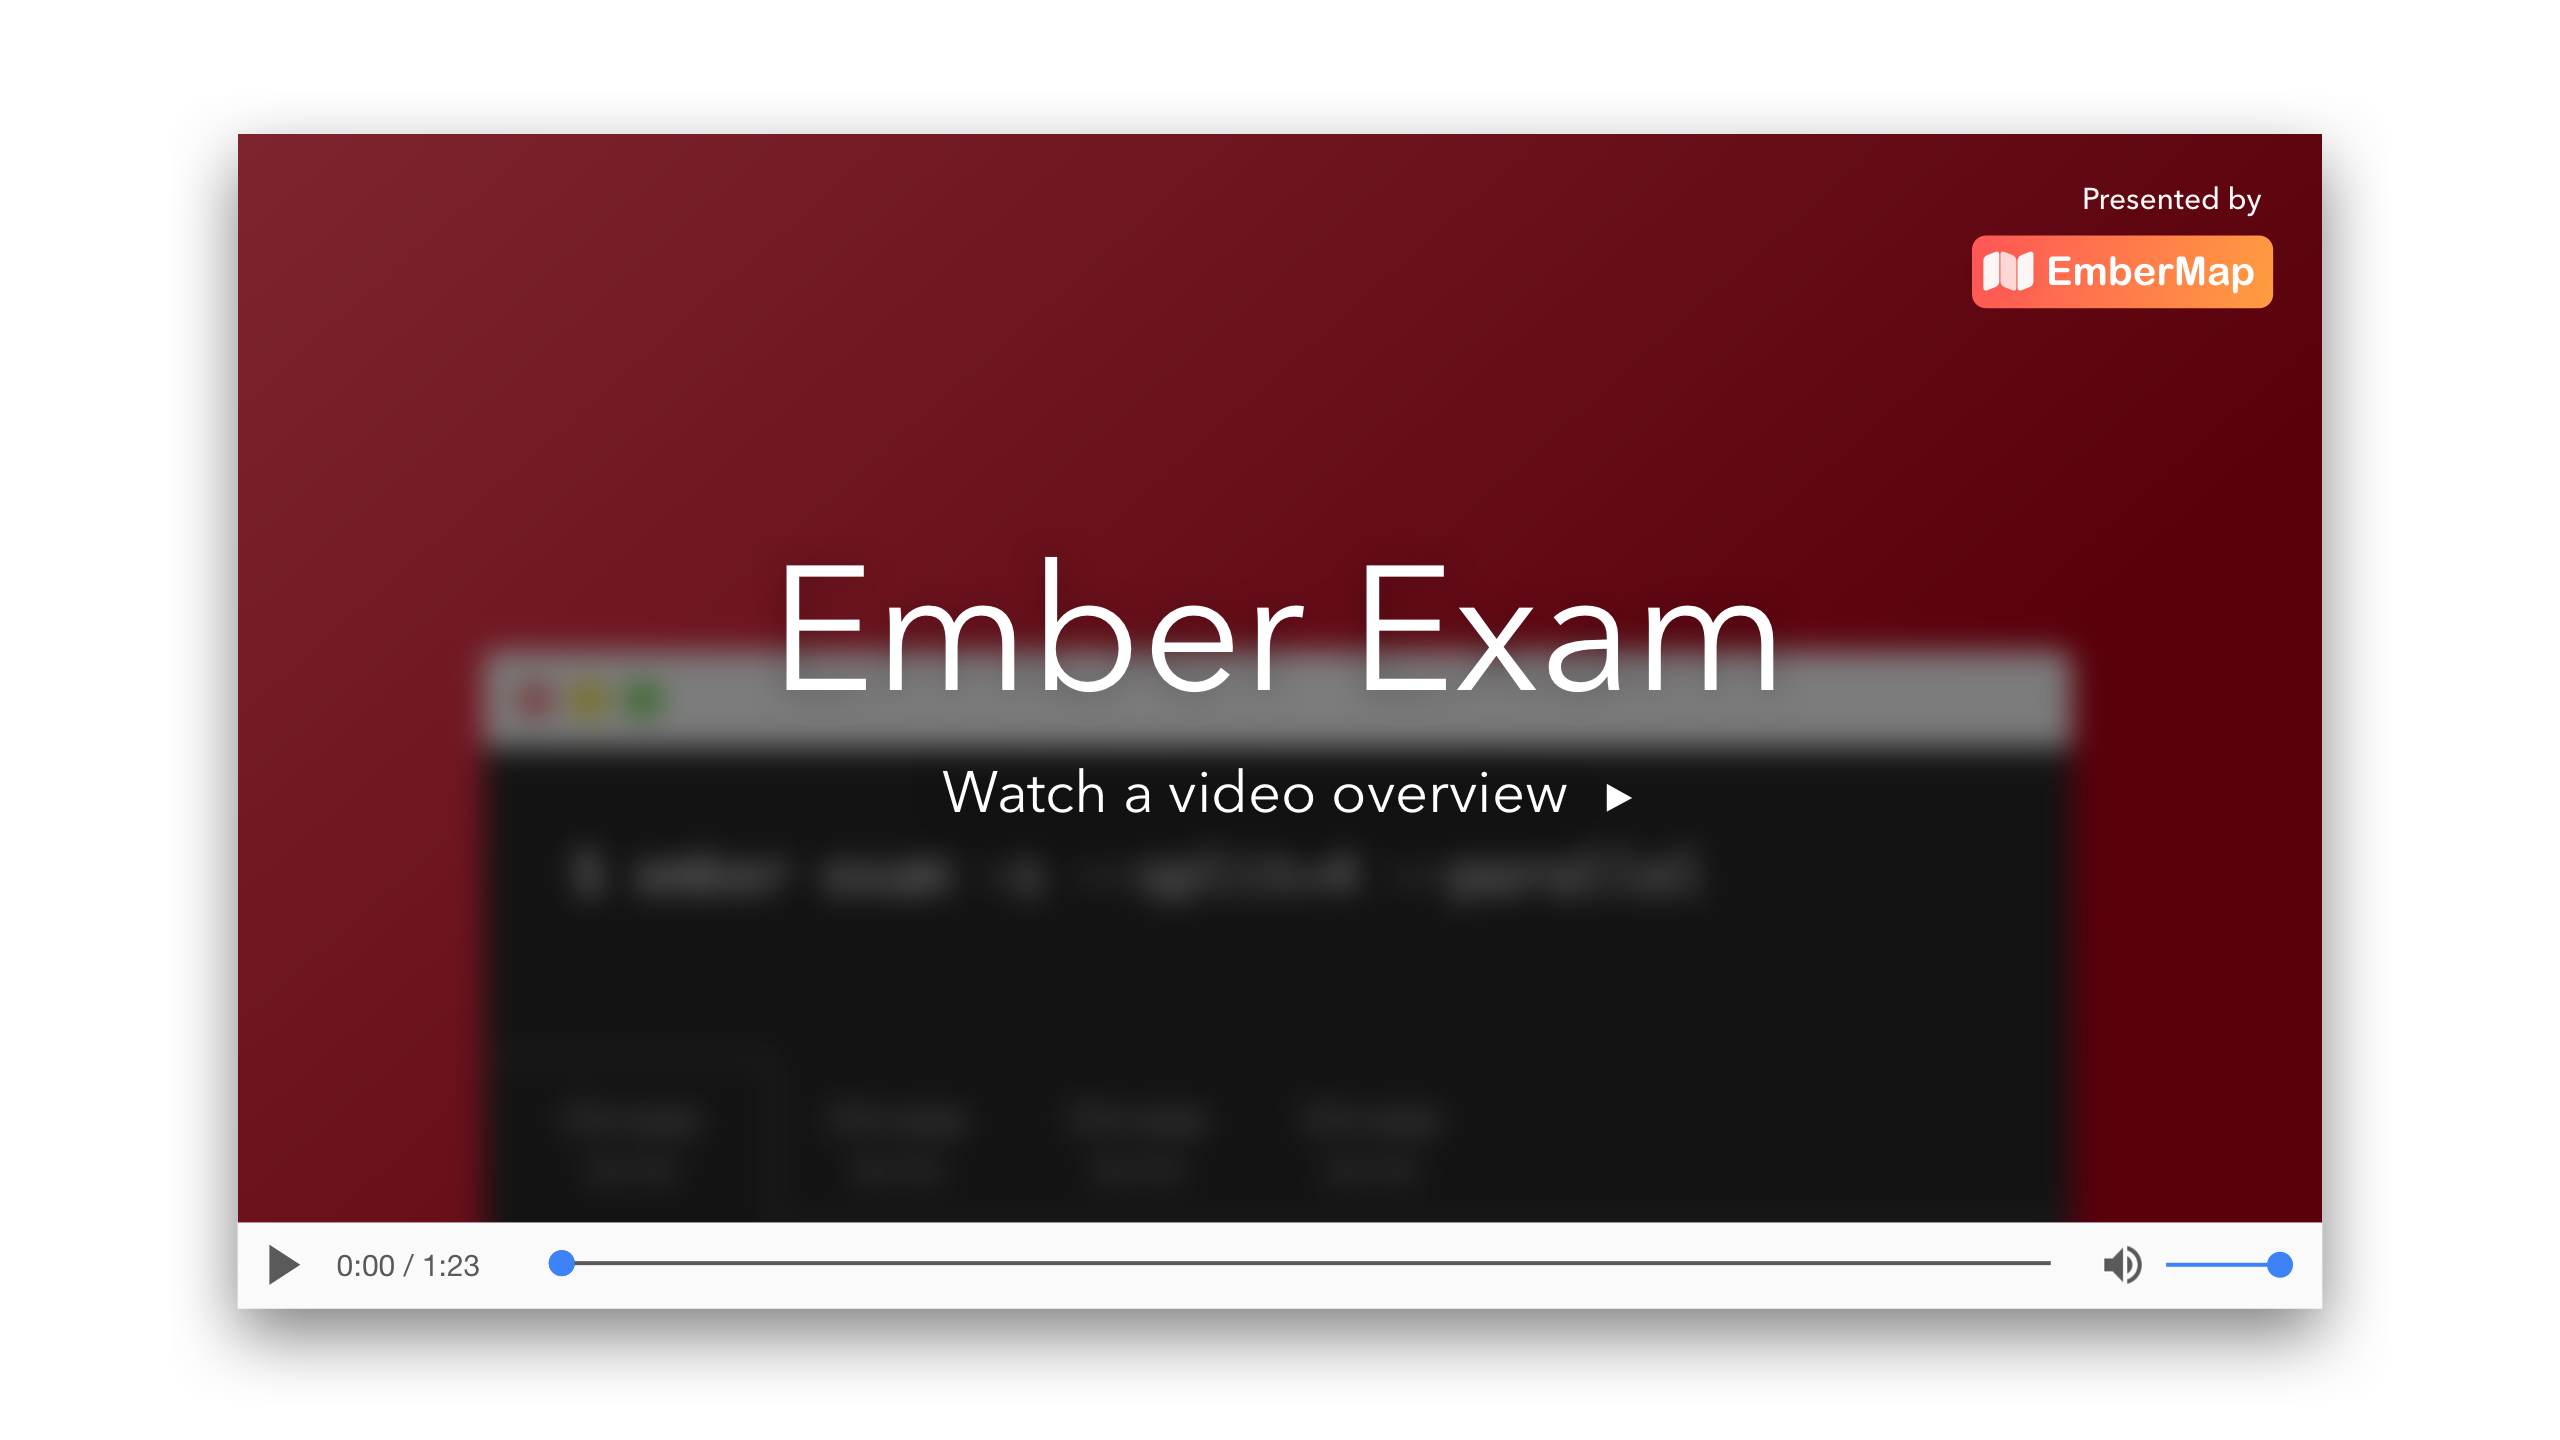 Introduction to Ember Exam